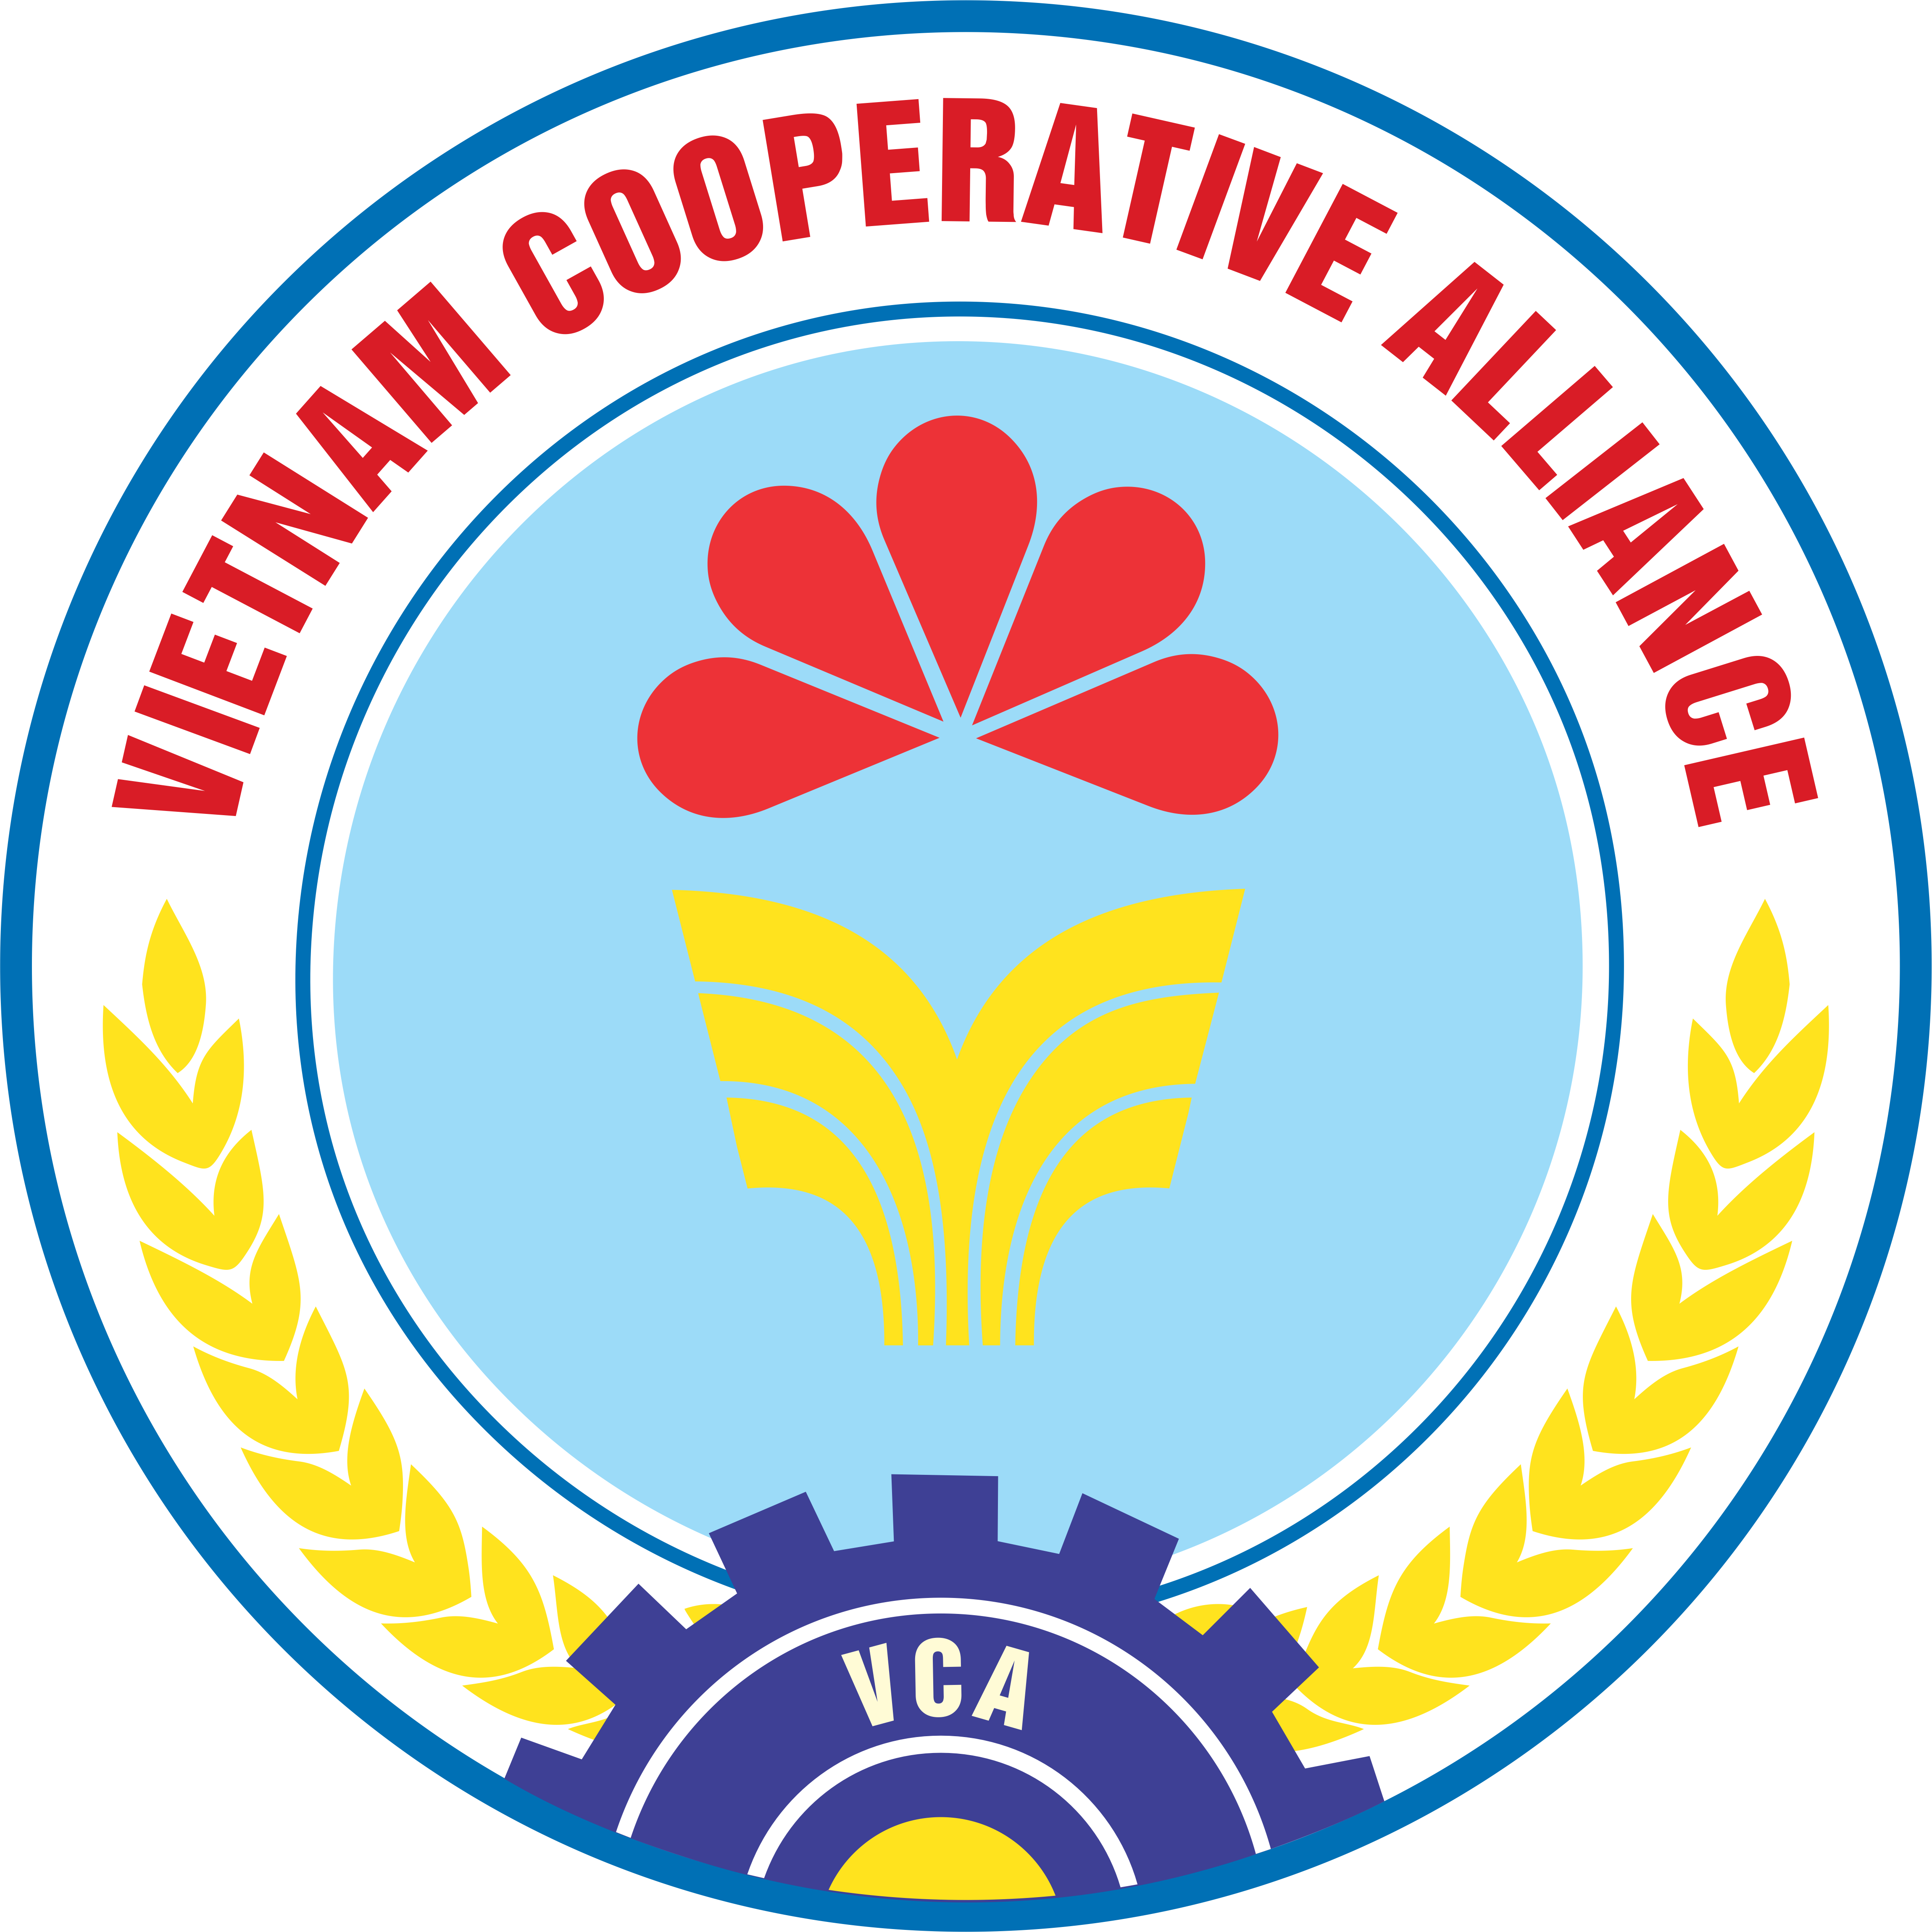 Vietnam Cooperative Alliance